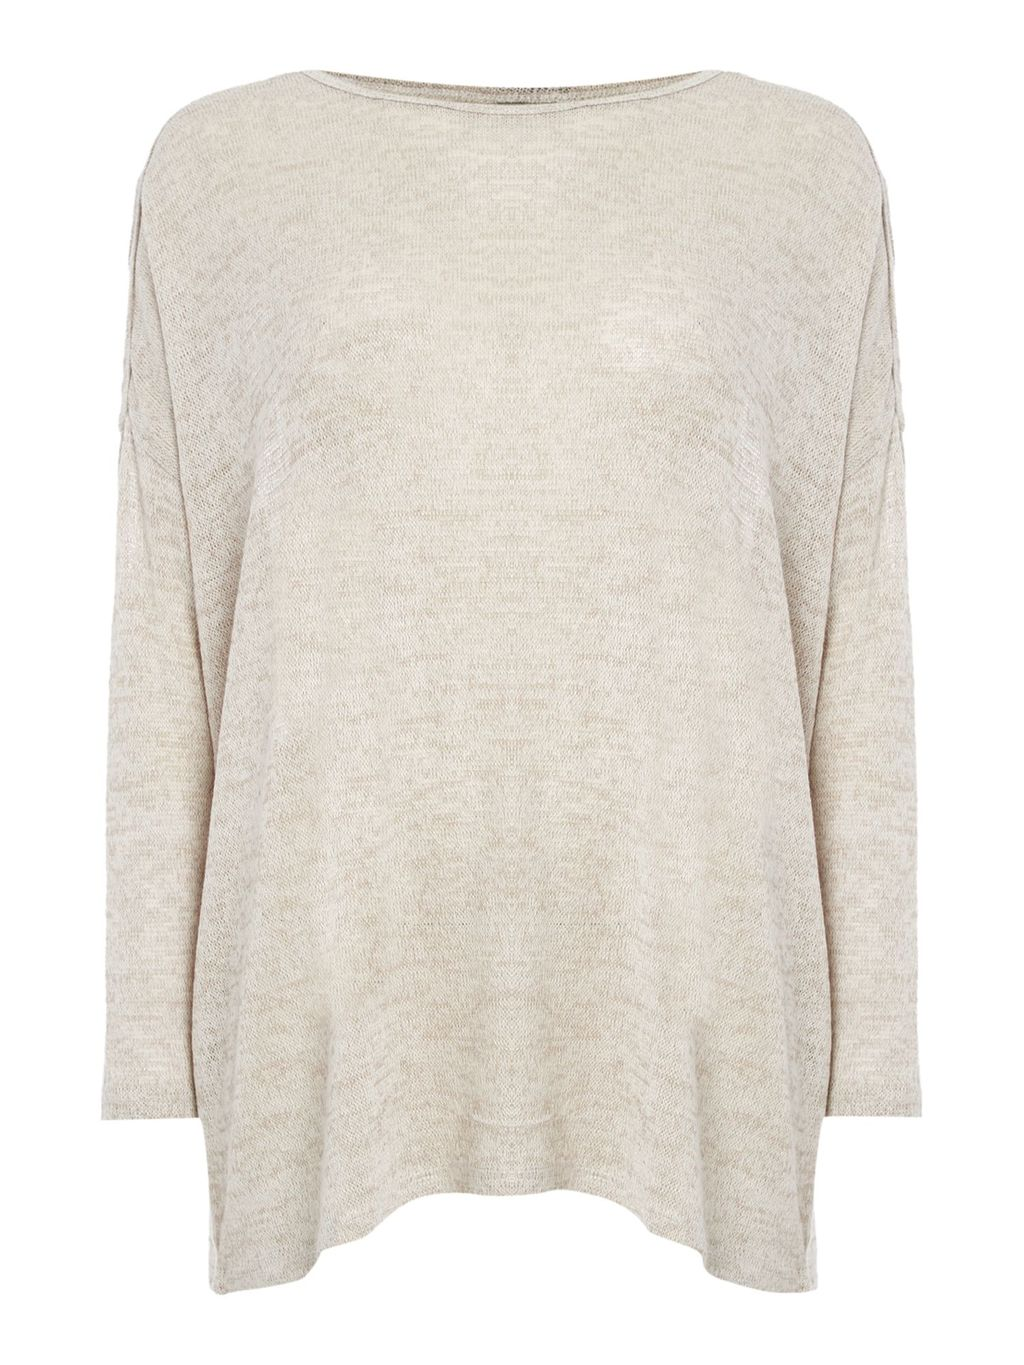 Long Sleeve Lightweight Oversize Knitted Jumper, Beige - neckline: slash/boat neckline; pattern: plain; length: below the bottom; style: standard; predominant colour: stone; occasions: casual, creative work; fit: loose; hip detail: subtle/flattering hip detail; sleeve length: 3/4 length; sleeve style: standard; texture group: knits/crochet; pattern type: knitted - fine stitch; fibres: viscose/rayon - mix; season: s/s 2016; wardrobe: basic